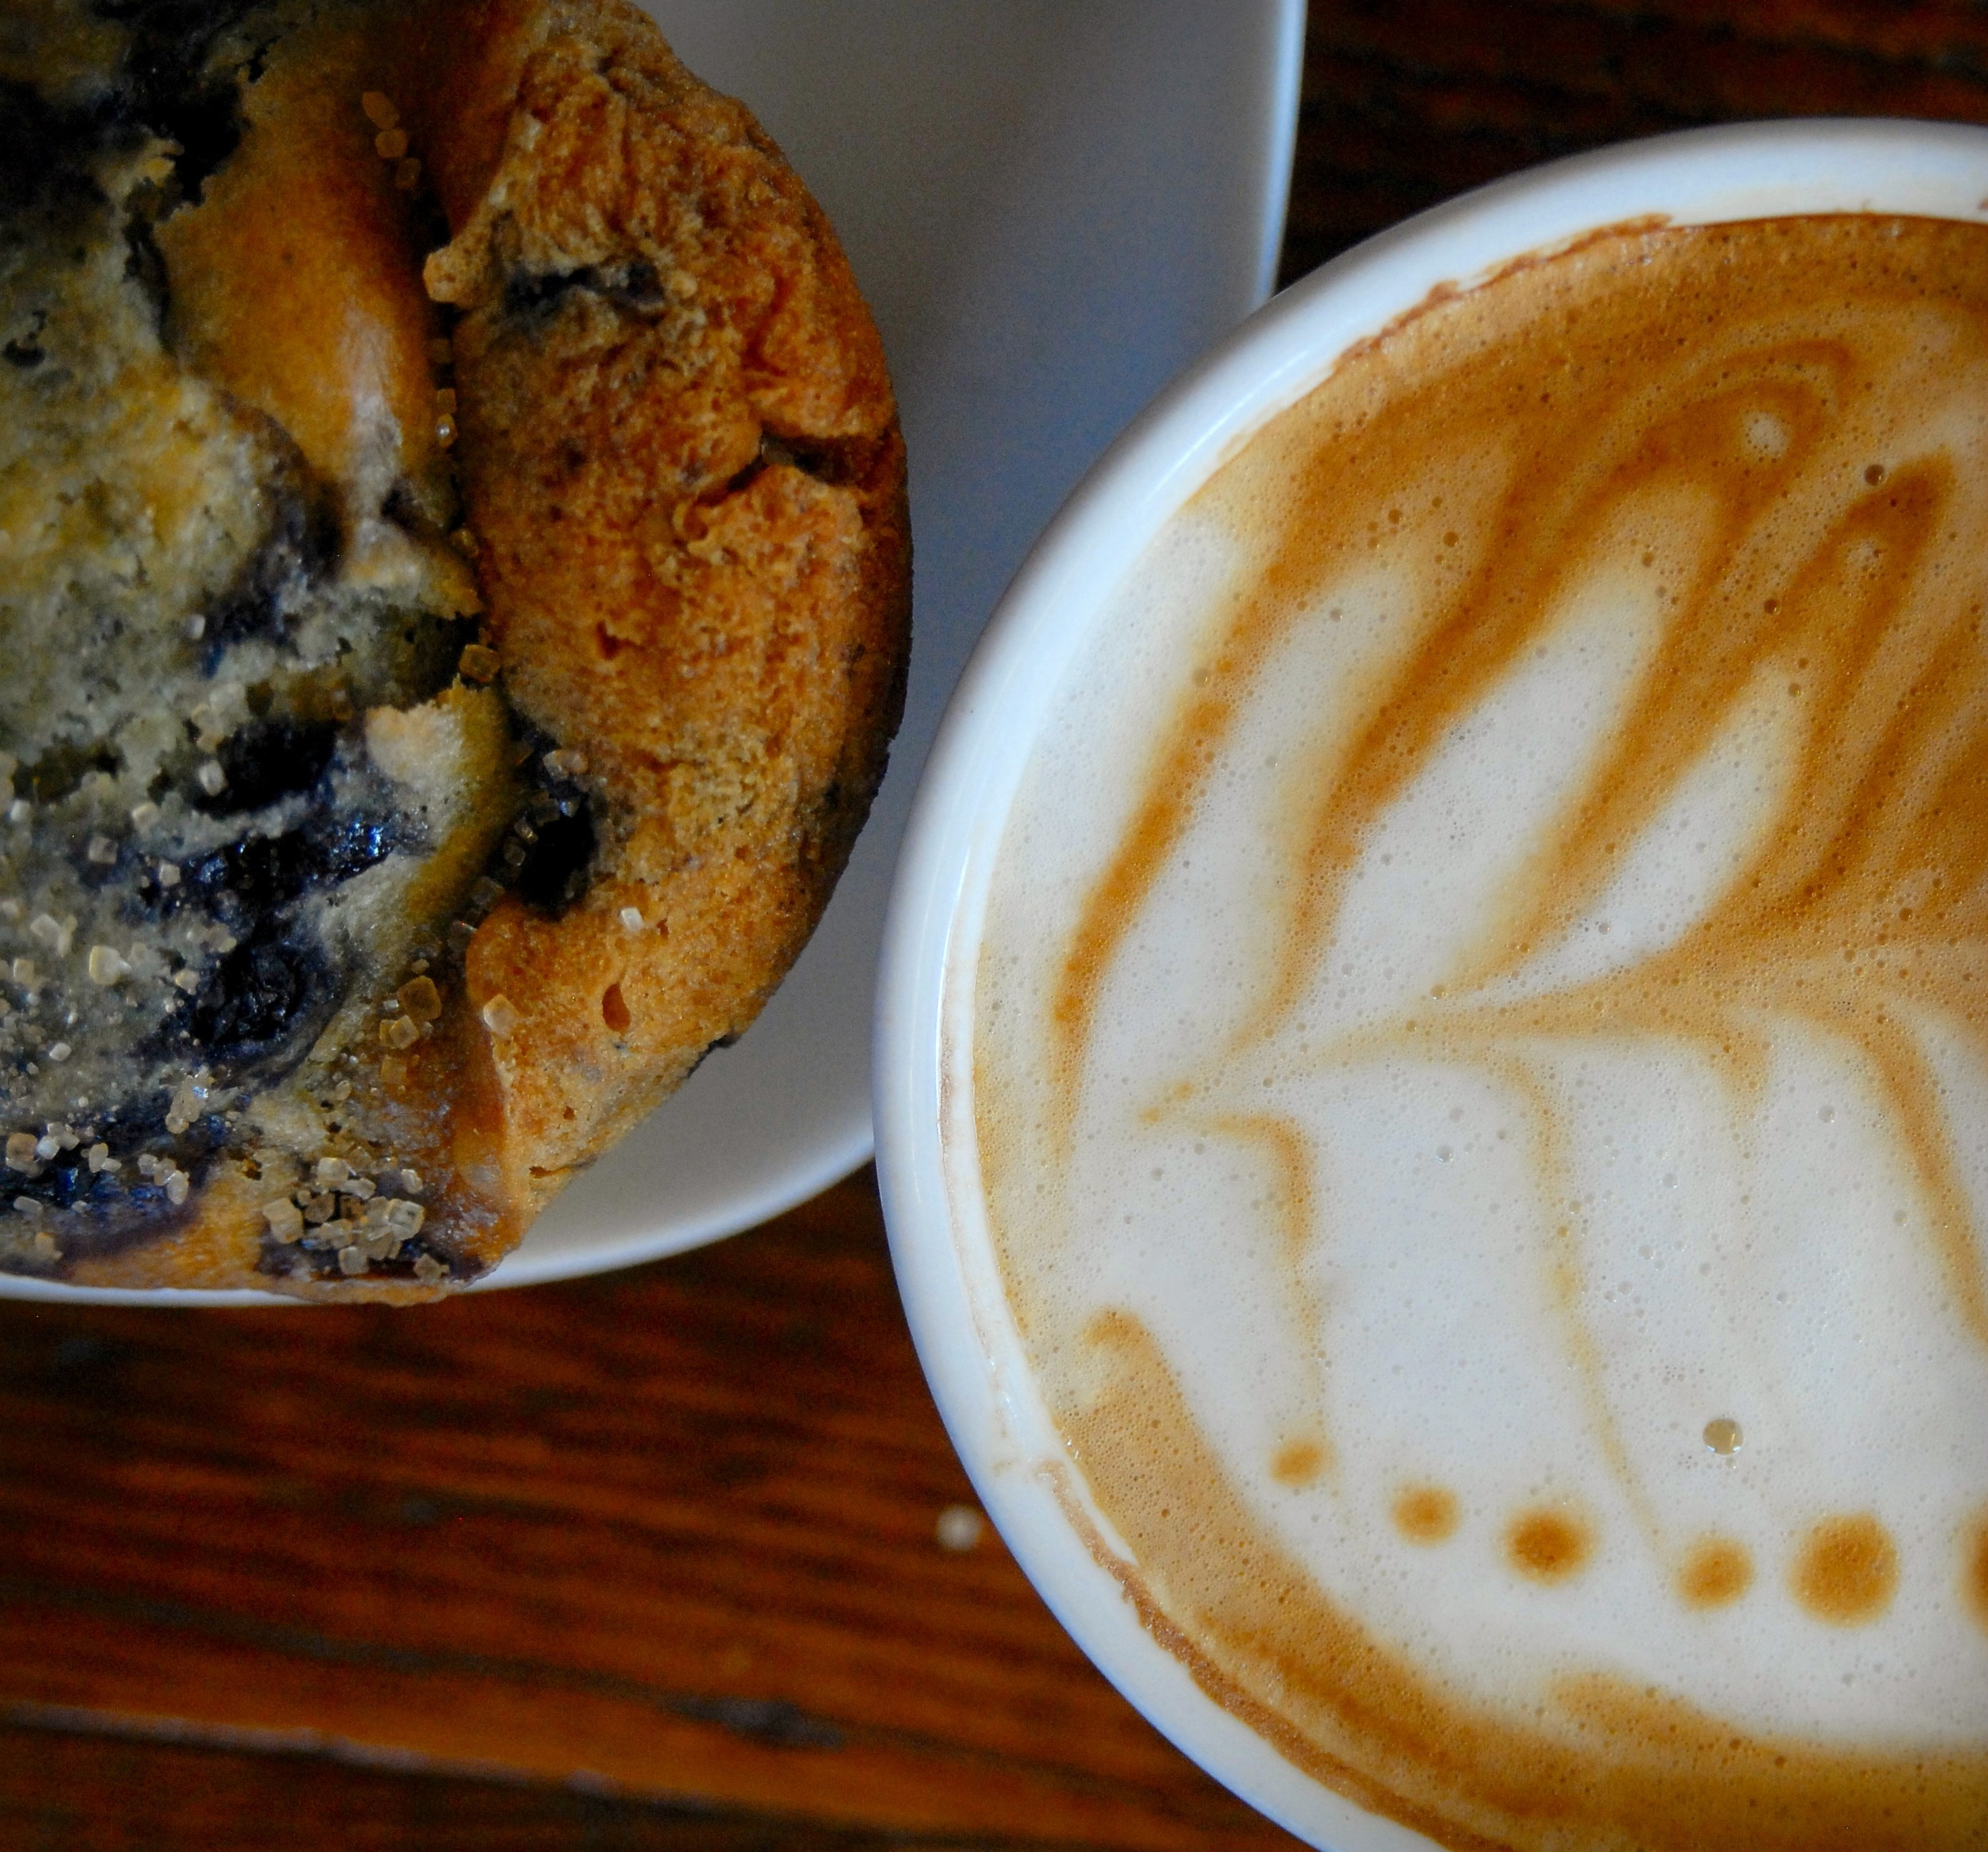 latte and muffin.jpg